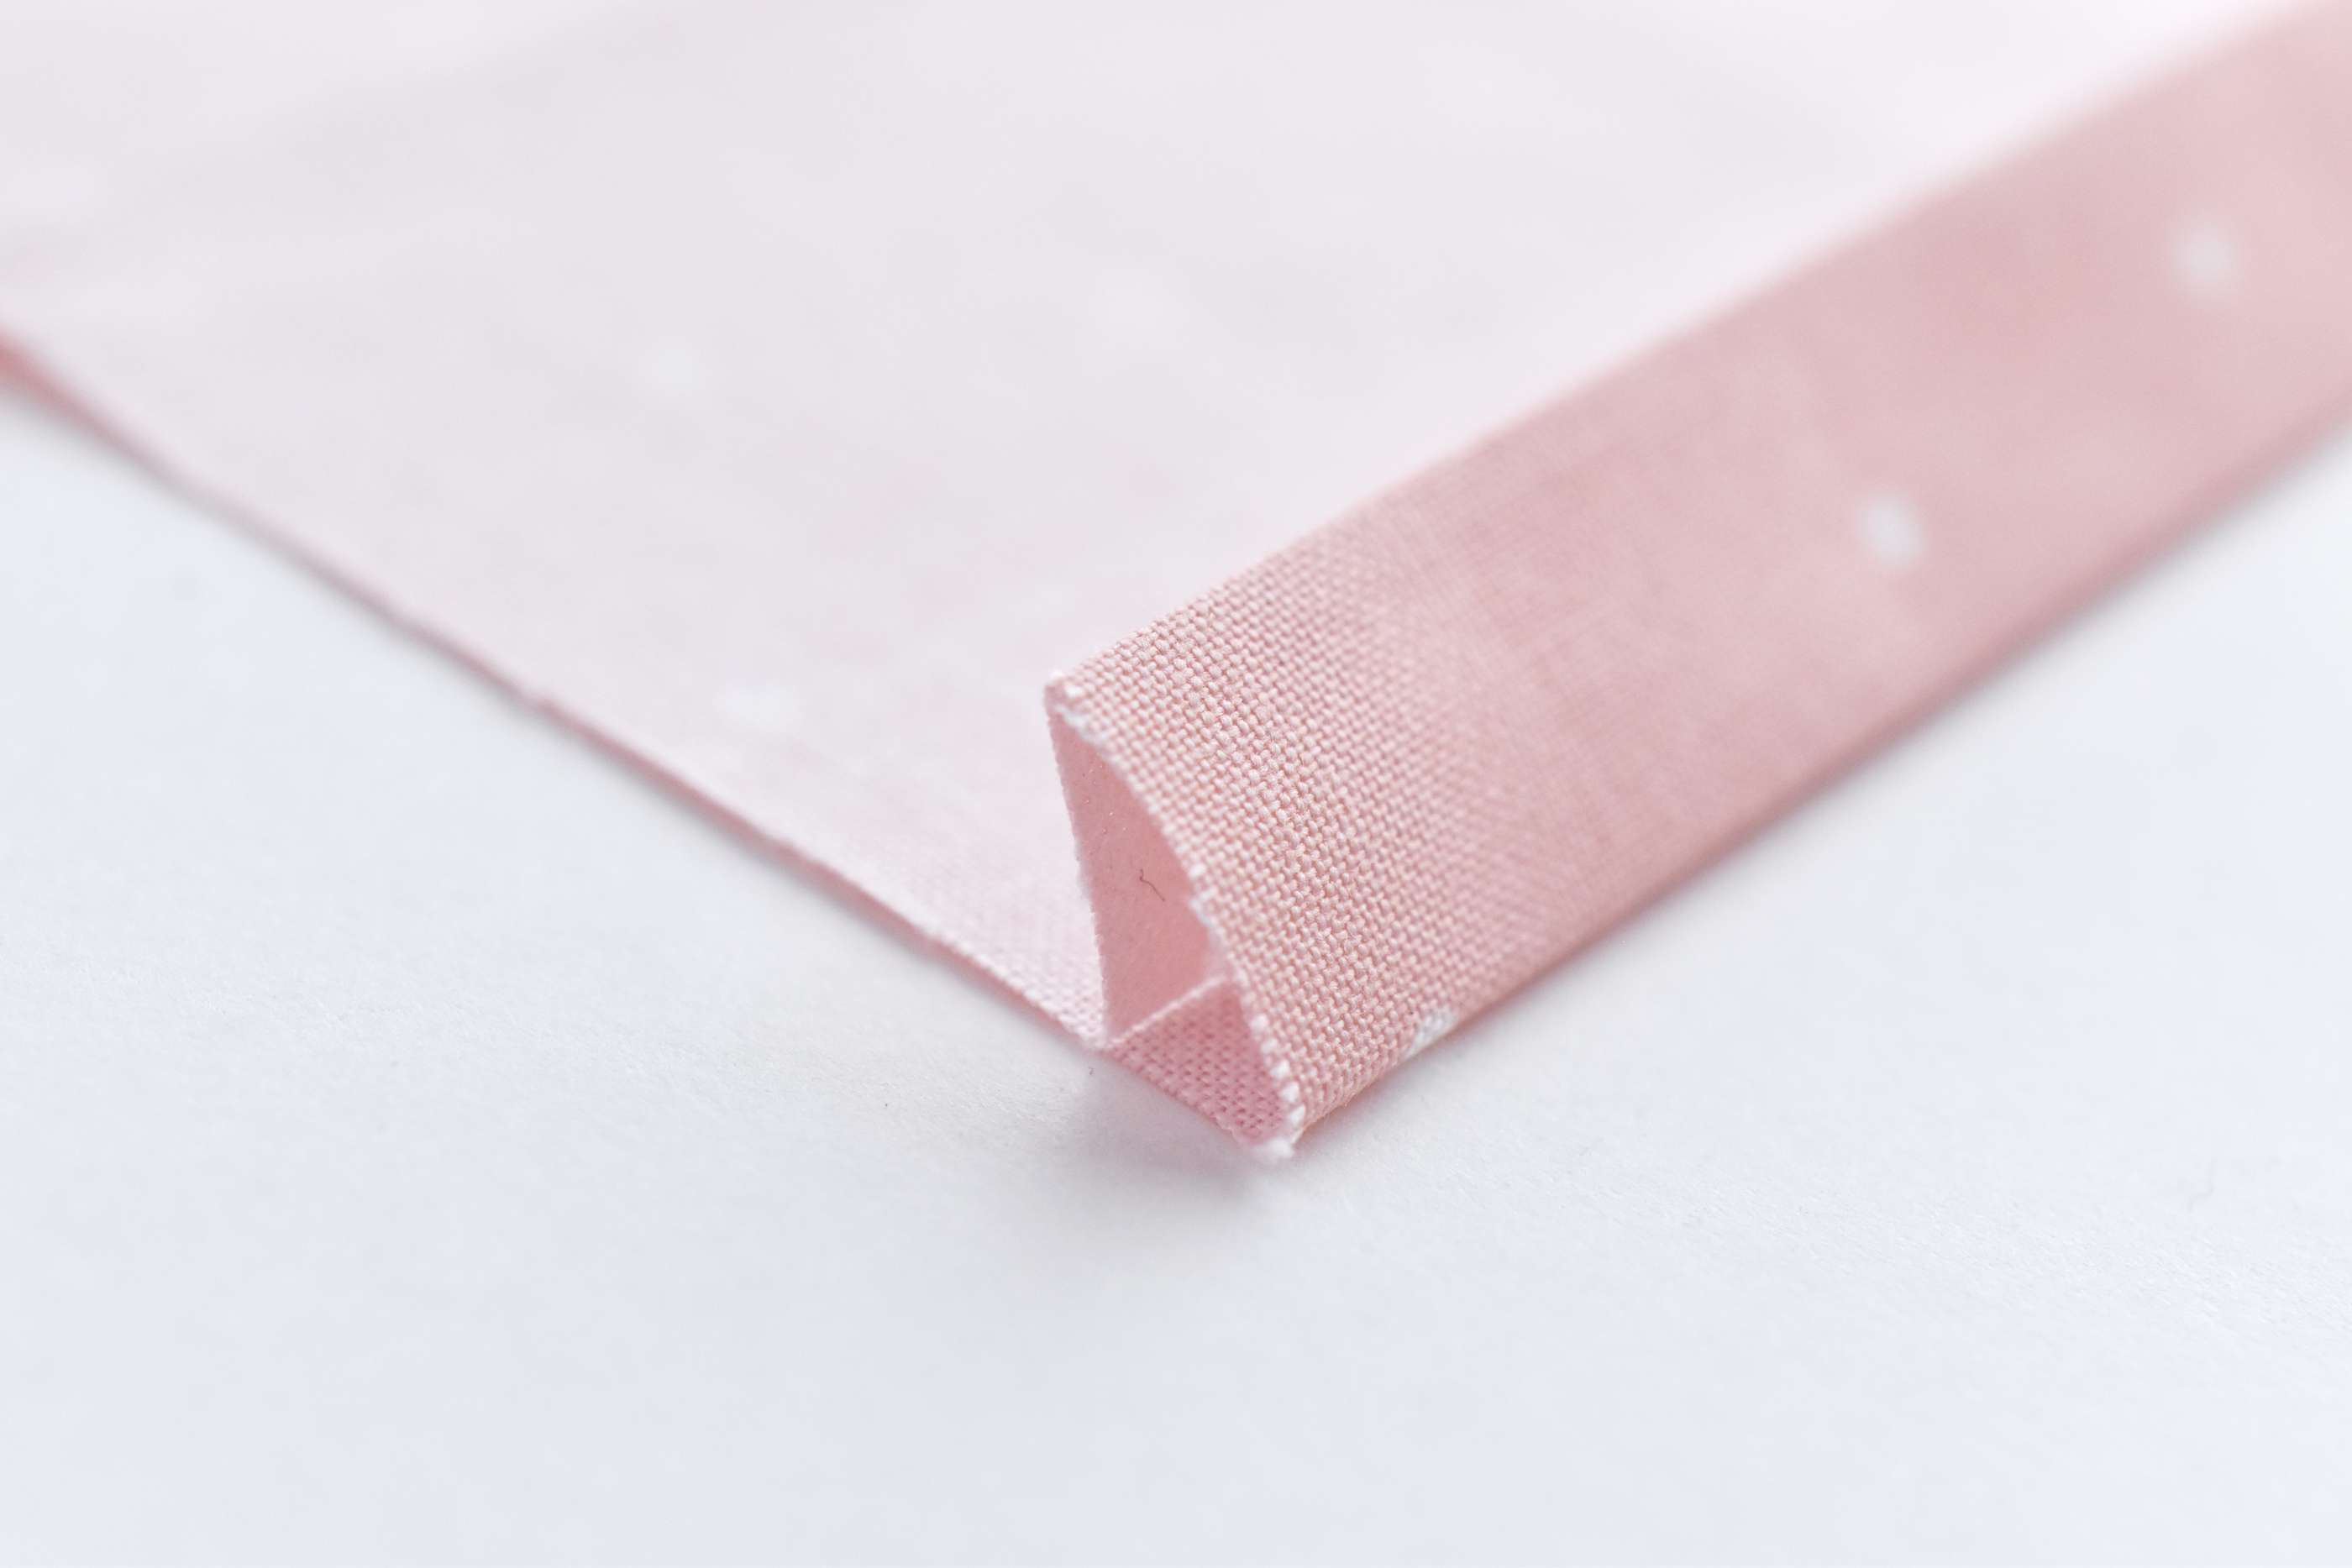 Double Fold and Press the Hem